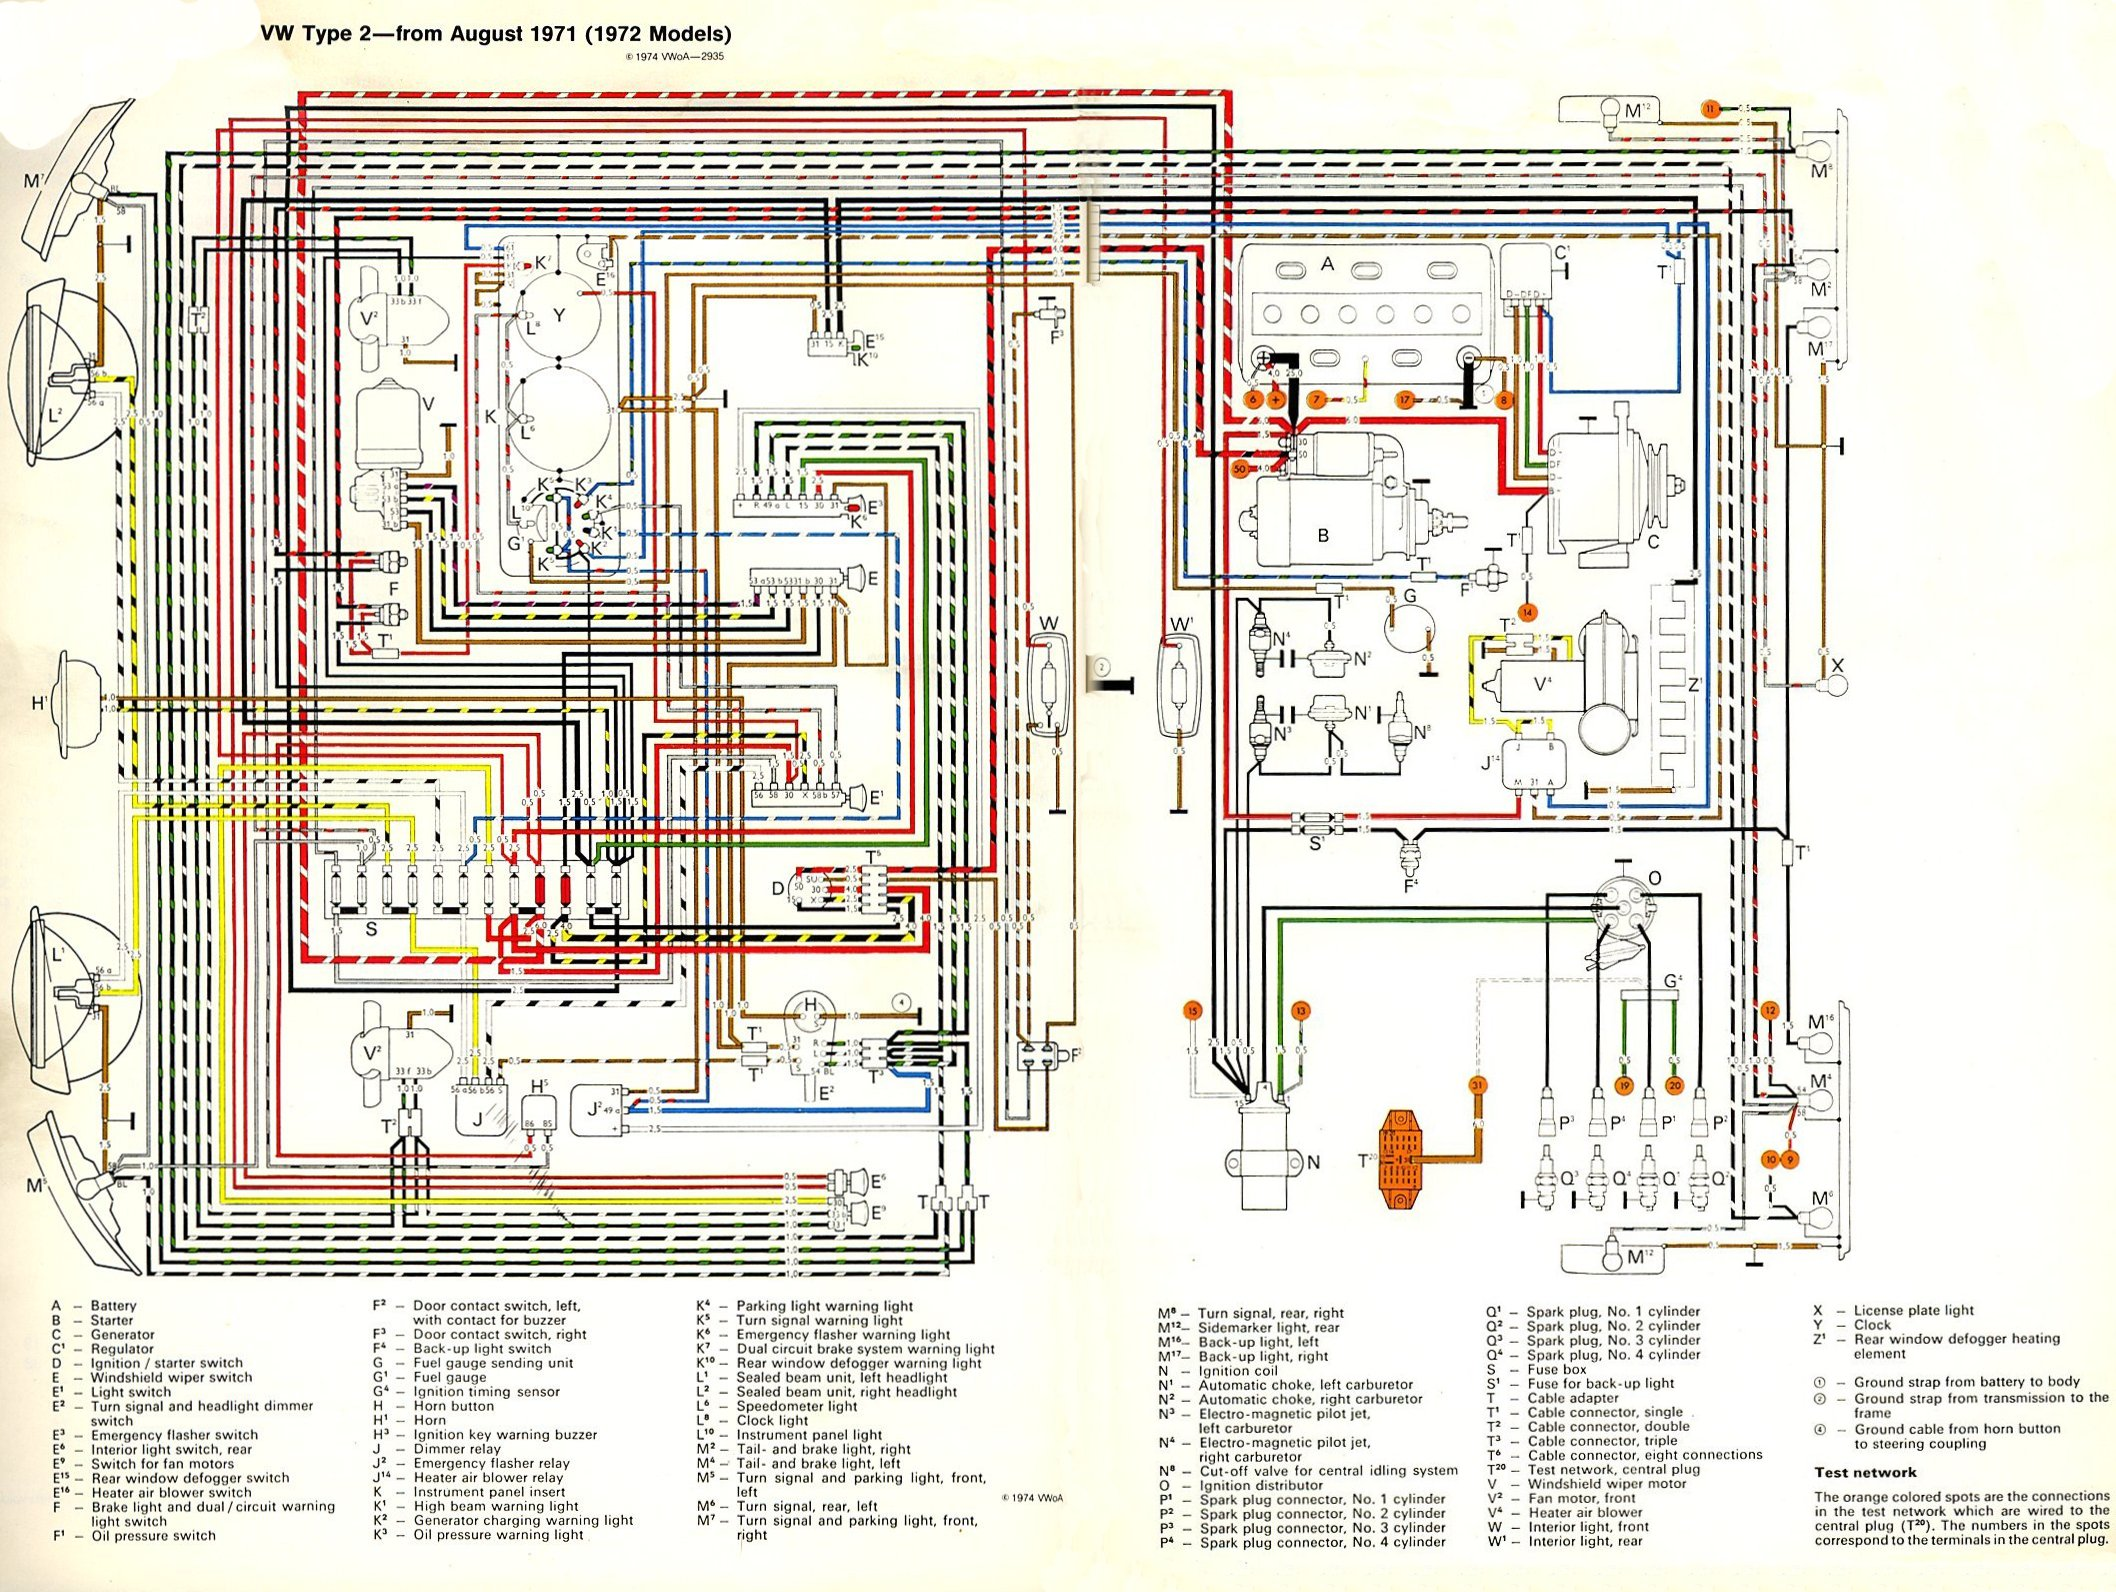 bus_1972_wiring 1972 corvette wiring diagram 1972 corvette ac wiring diagram Wiring Harness Diagram at gsmx.co